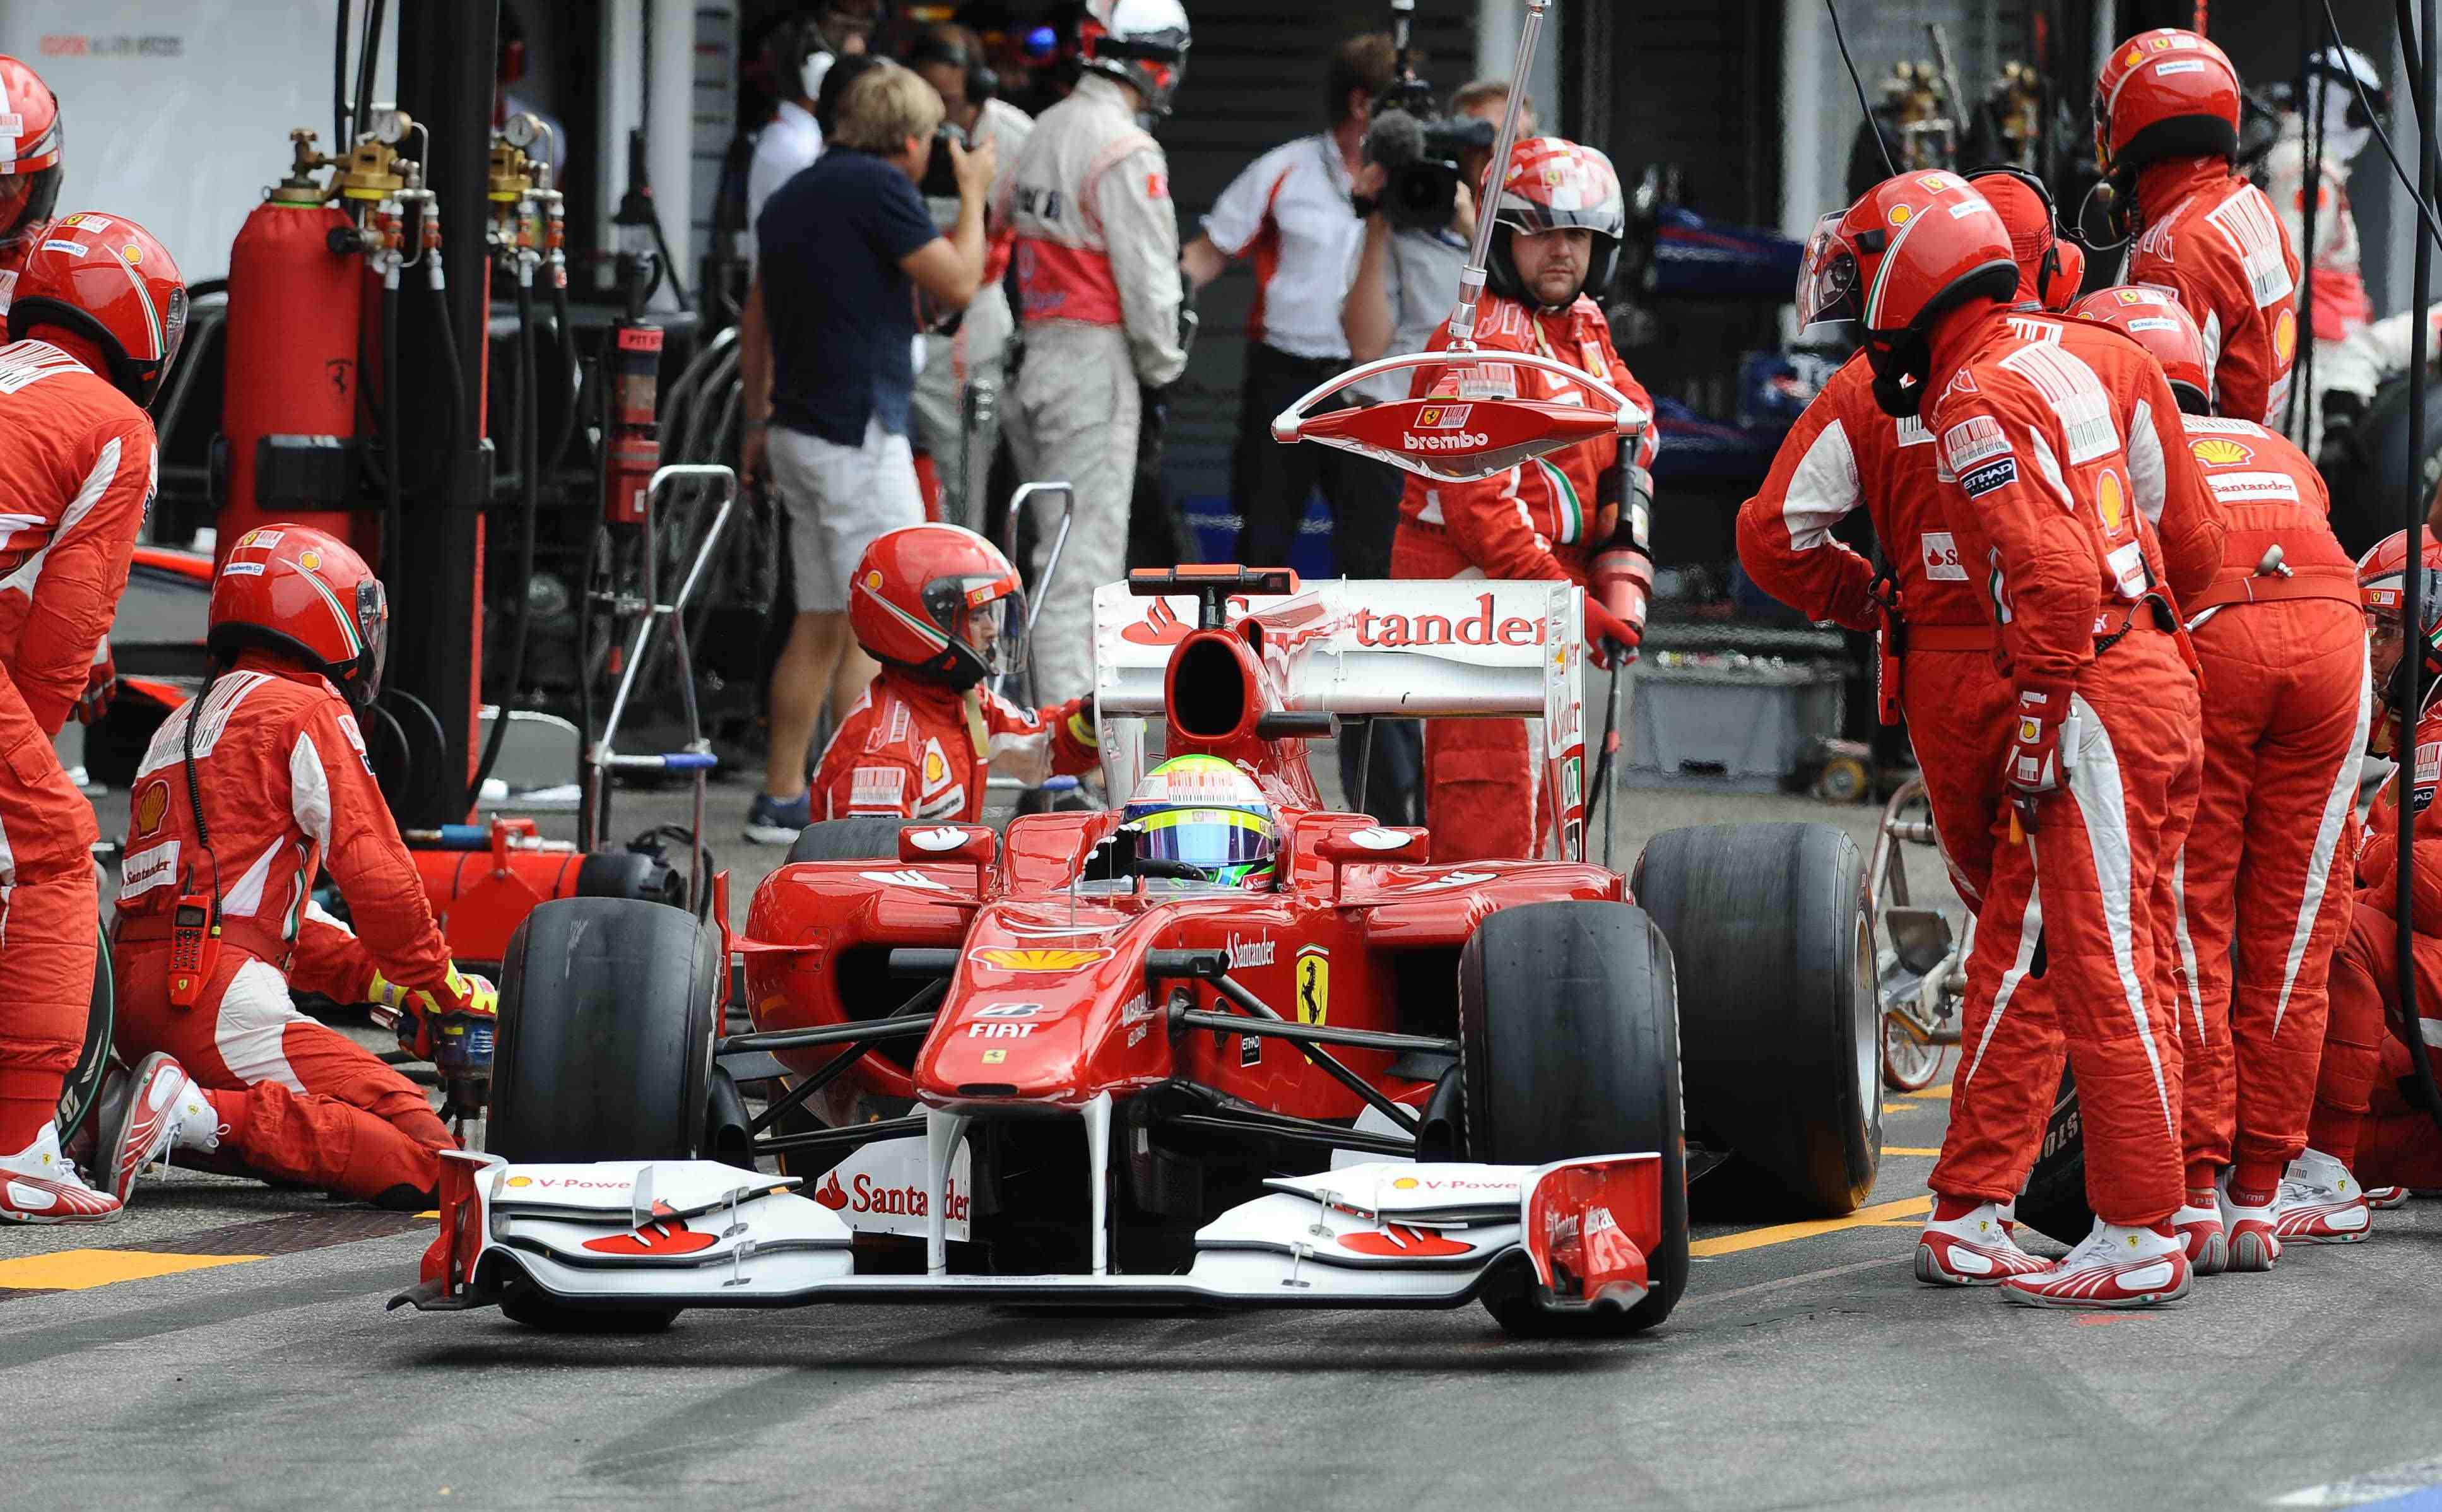 Felipe Massa aiming to win in Hungary